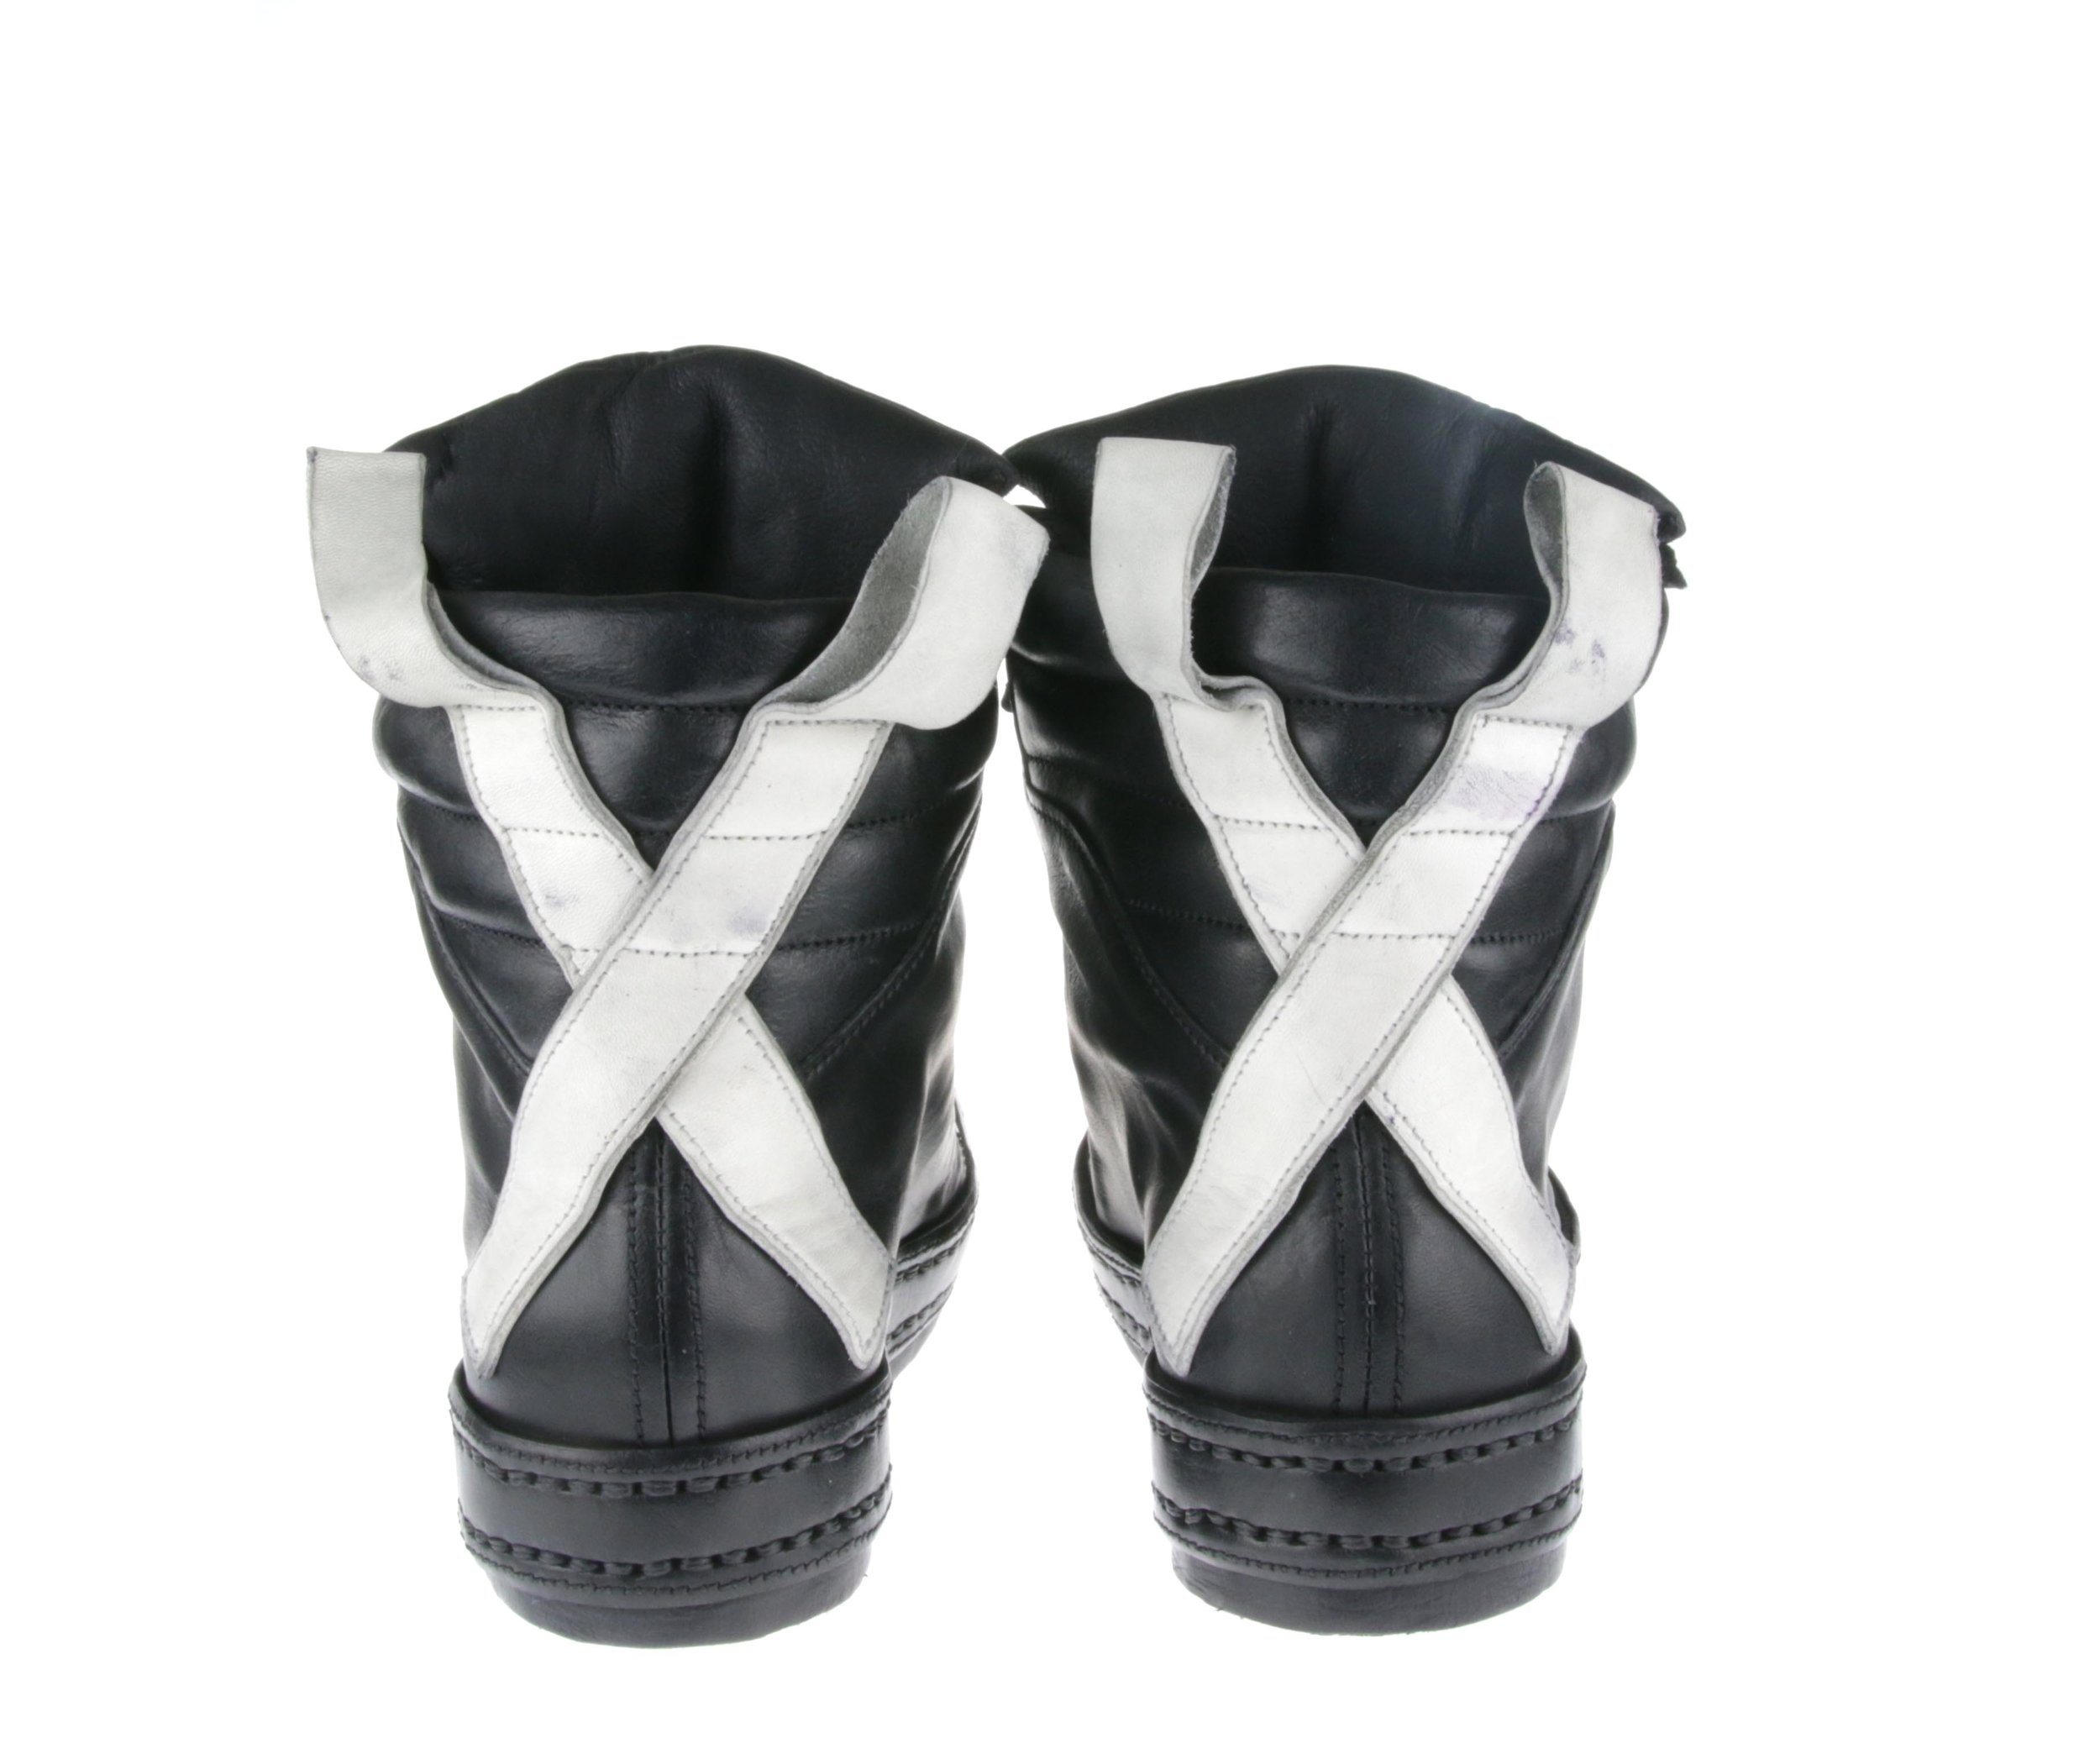 8Hole BK Pads Xs Double Back.jpg